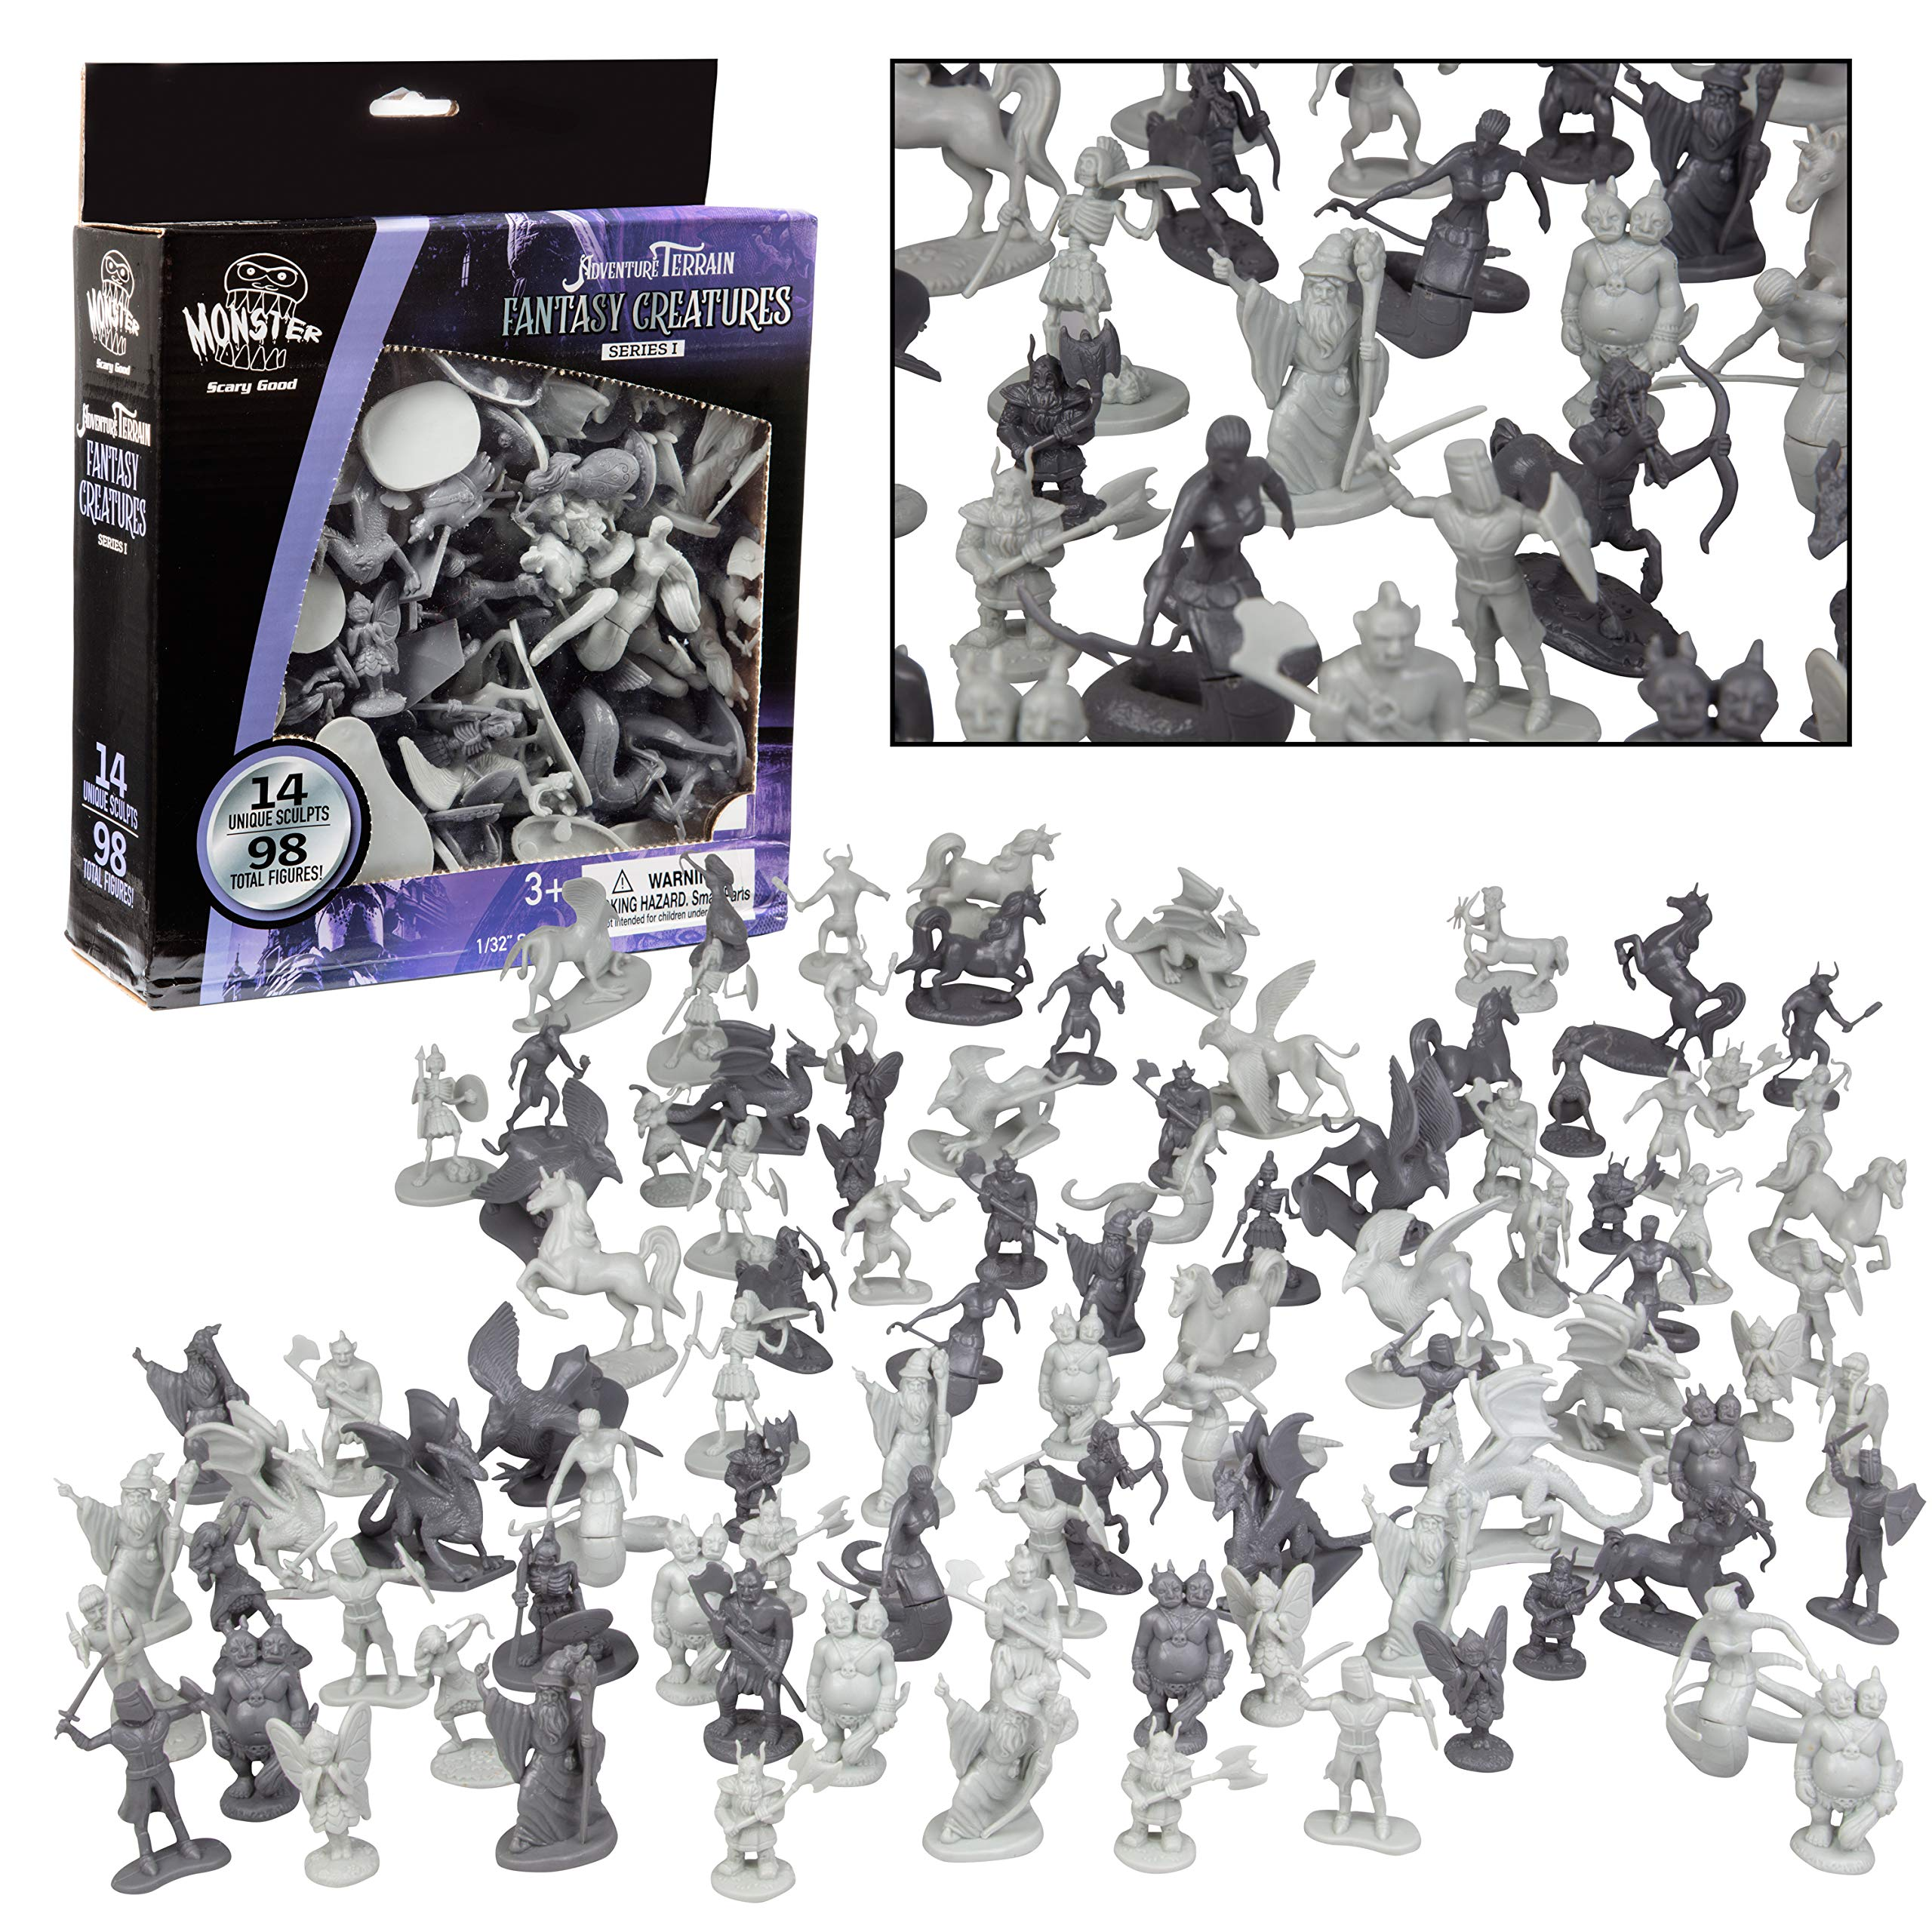 Fantasy Creature Mini Action Figure Playset-98pc Monster Toy Miniatures w 14 Unique Sculpts - Dragons, Wizards, Orcs, and More- XL 1/32nd Scale Dungeon Character Accessories